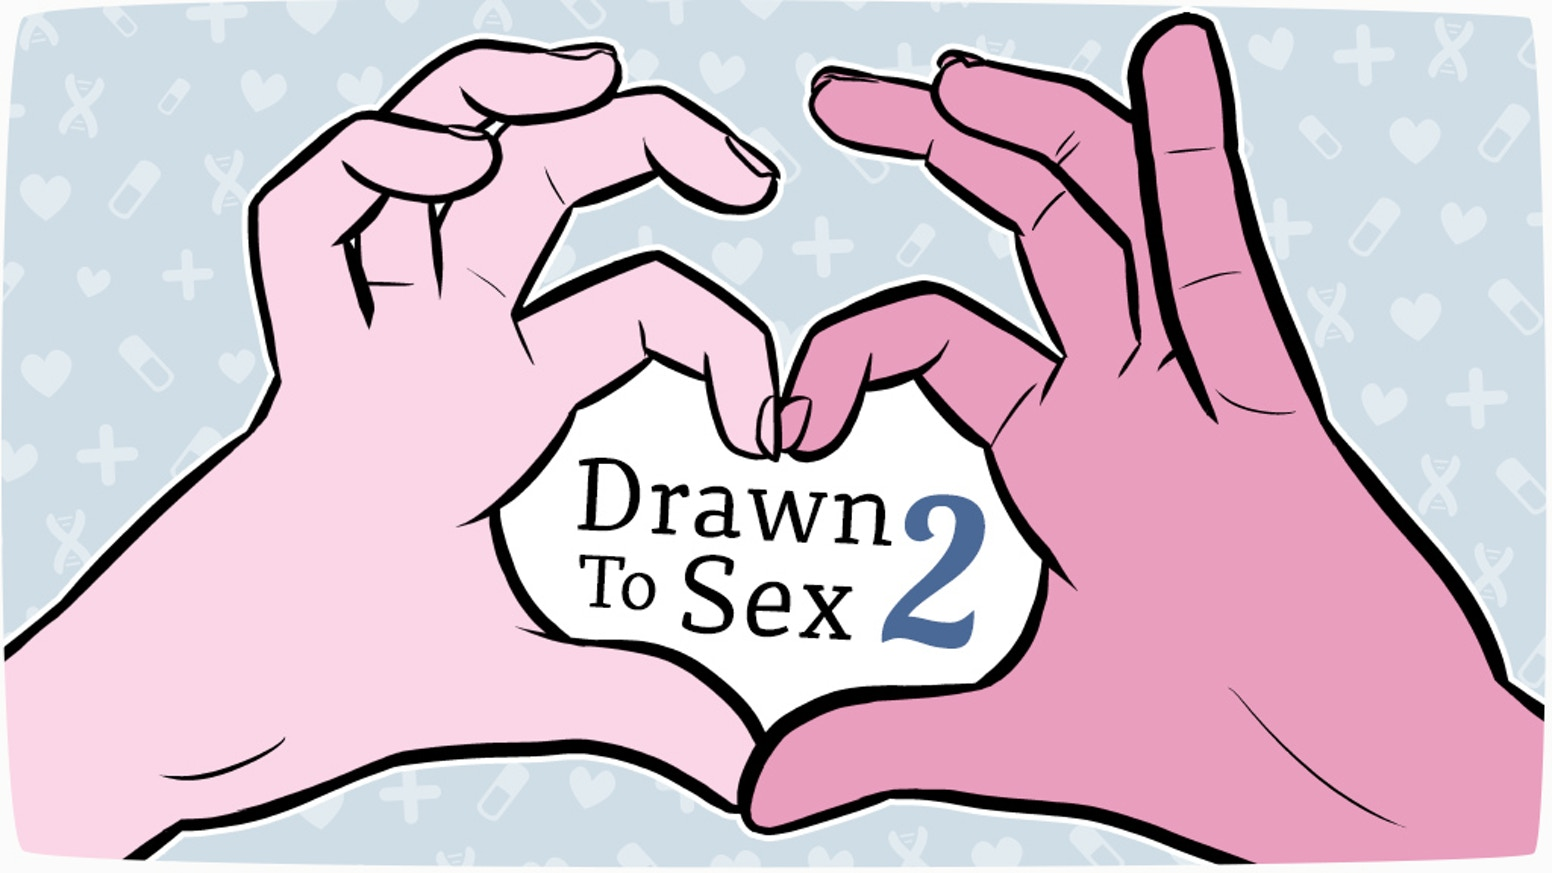 A sex education comic book focusing on bodies and health! Lighthearted, fun, and helpful comics for young adults and old alike.